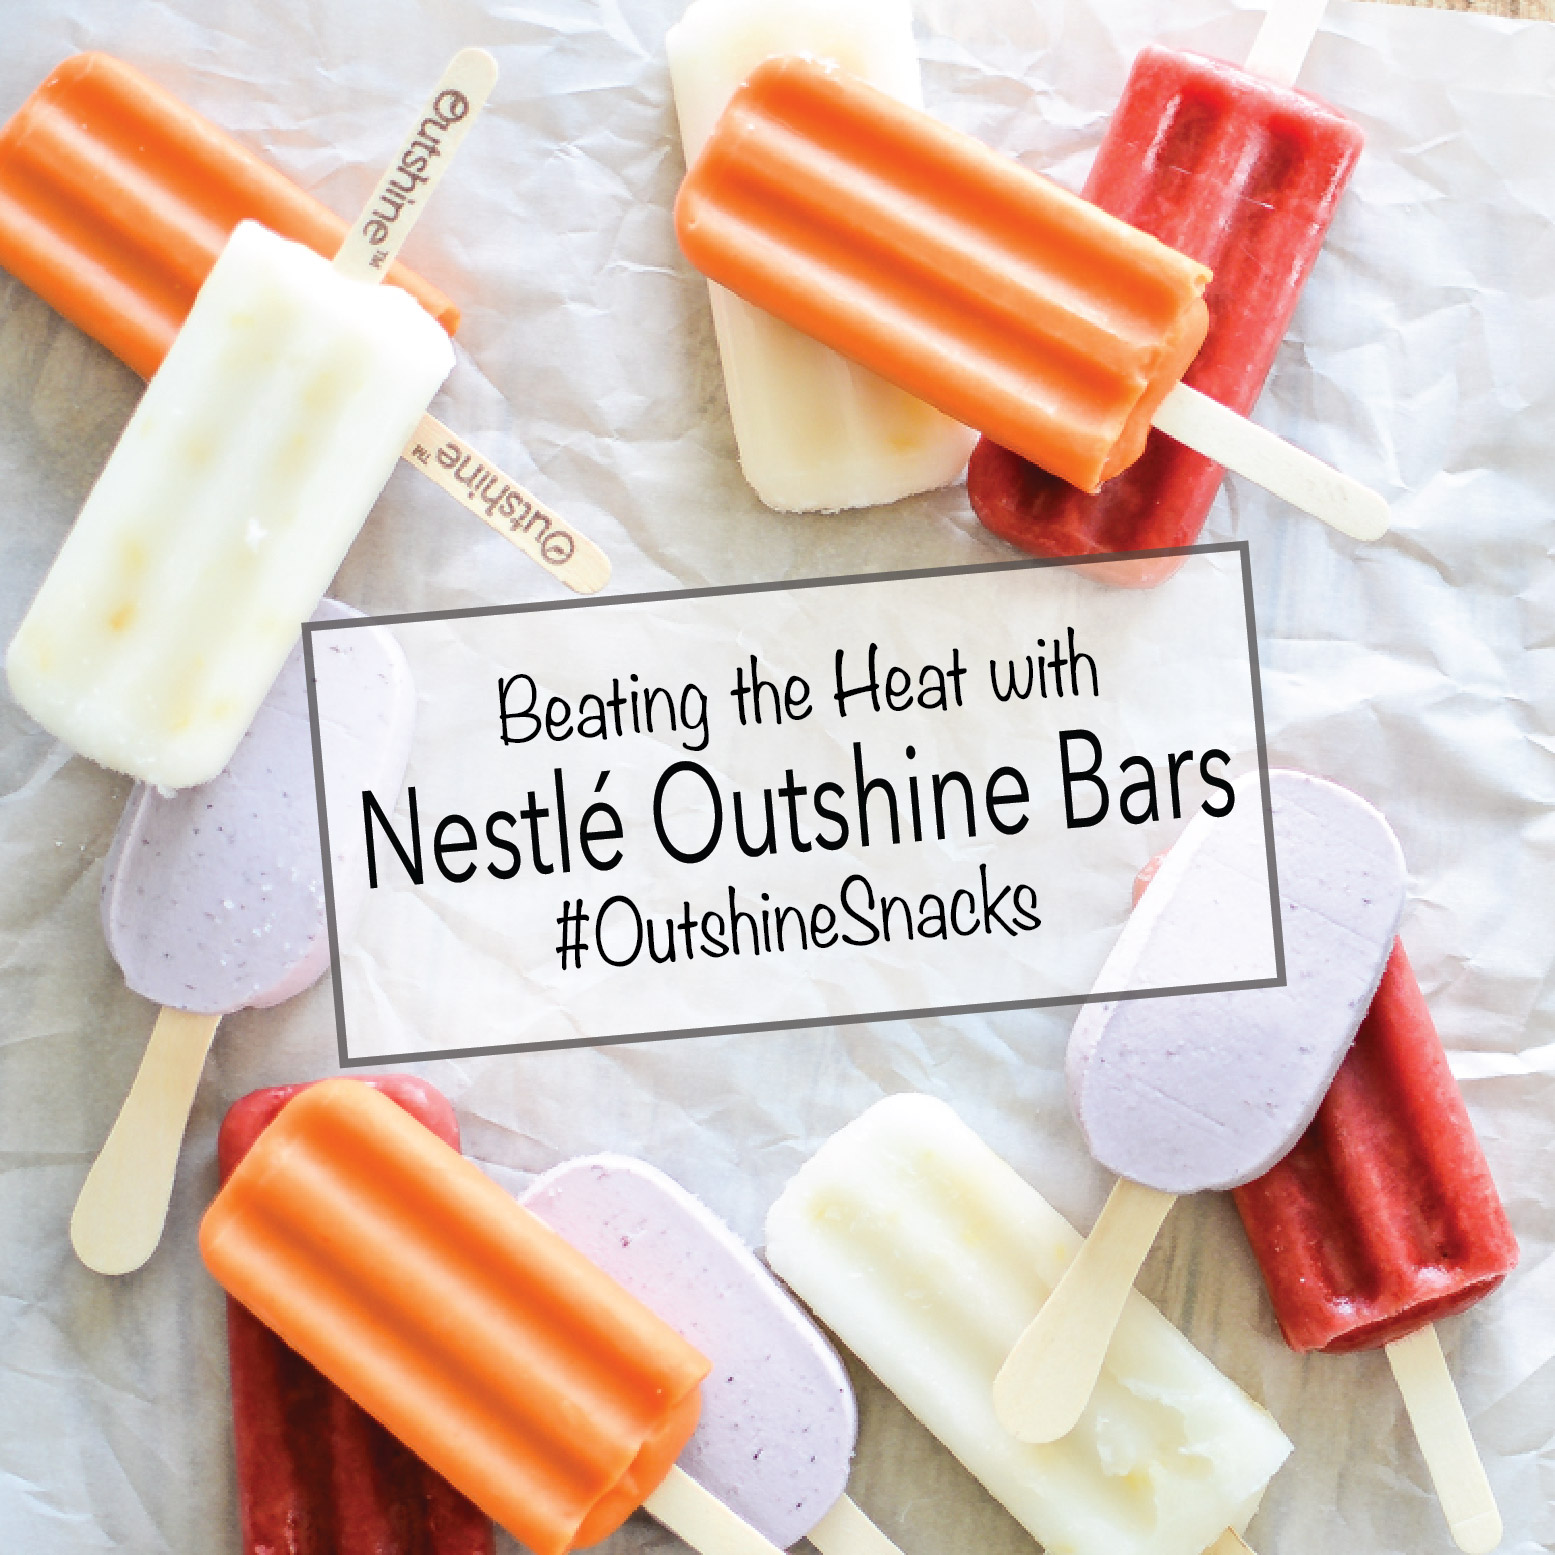 Beating the Heat with Nestlé Outshine Bars